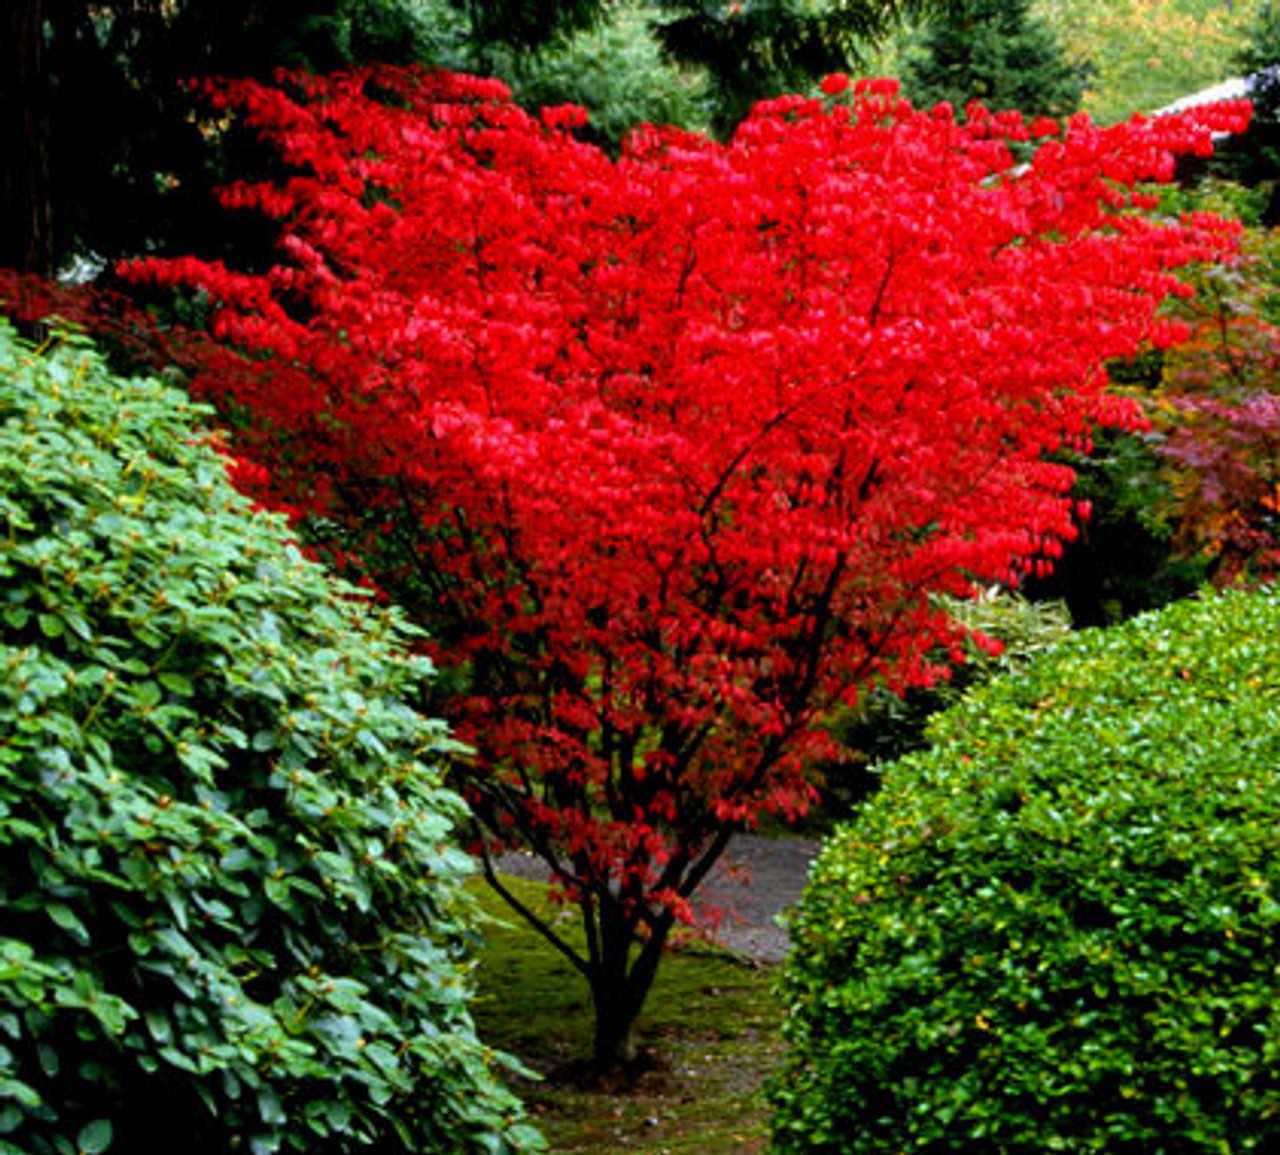 Help Me Save my Japanese Maple Please! |Japanese Maple Red Beetle